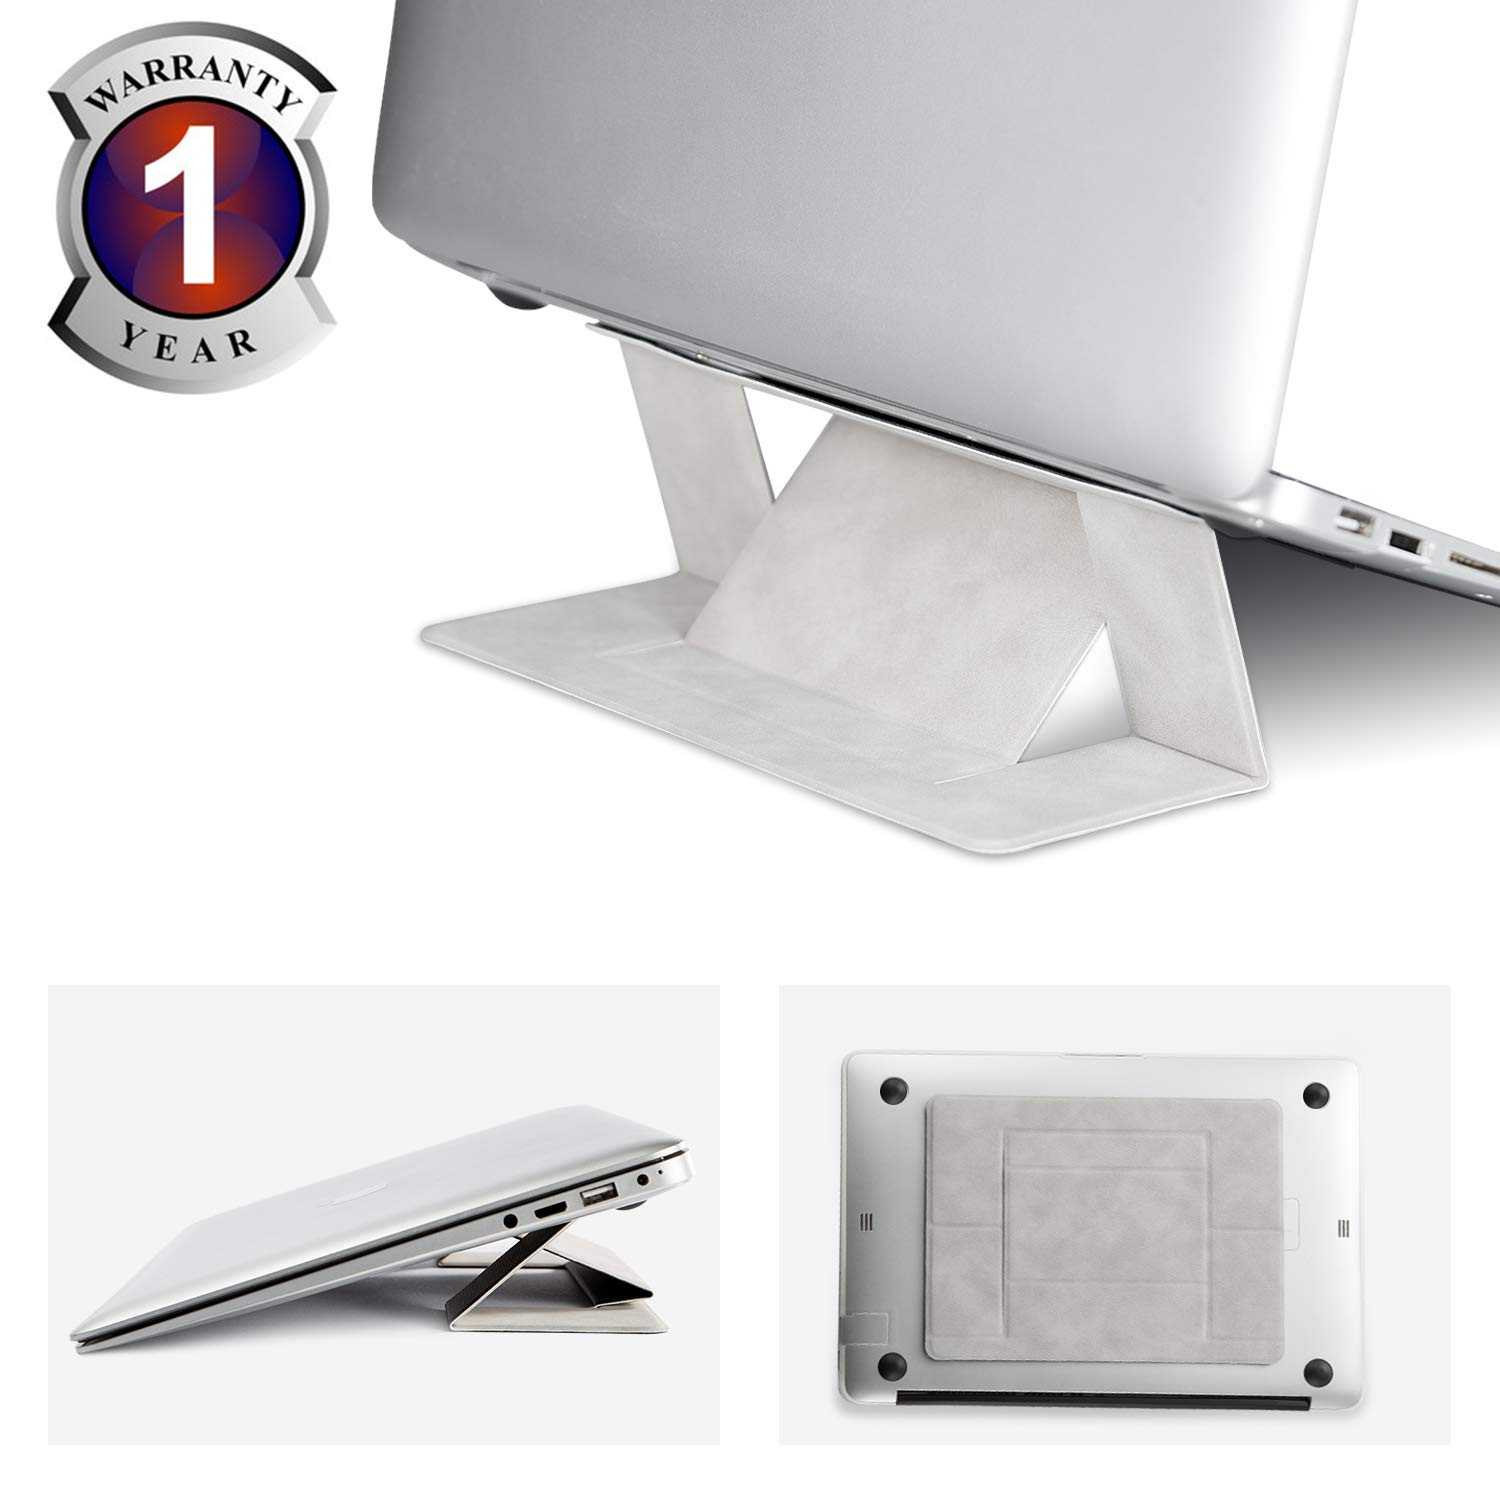 Gray Tablet Invisible Laptop Stand Portable-RUCACIO Adhesive Laptop Stand Lightweight Kickstand Foldable Seamless Appendage of Computer Dual-Angle Adjustment Anti-Slide Fits Mac Book,Laptops,iPad